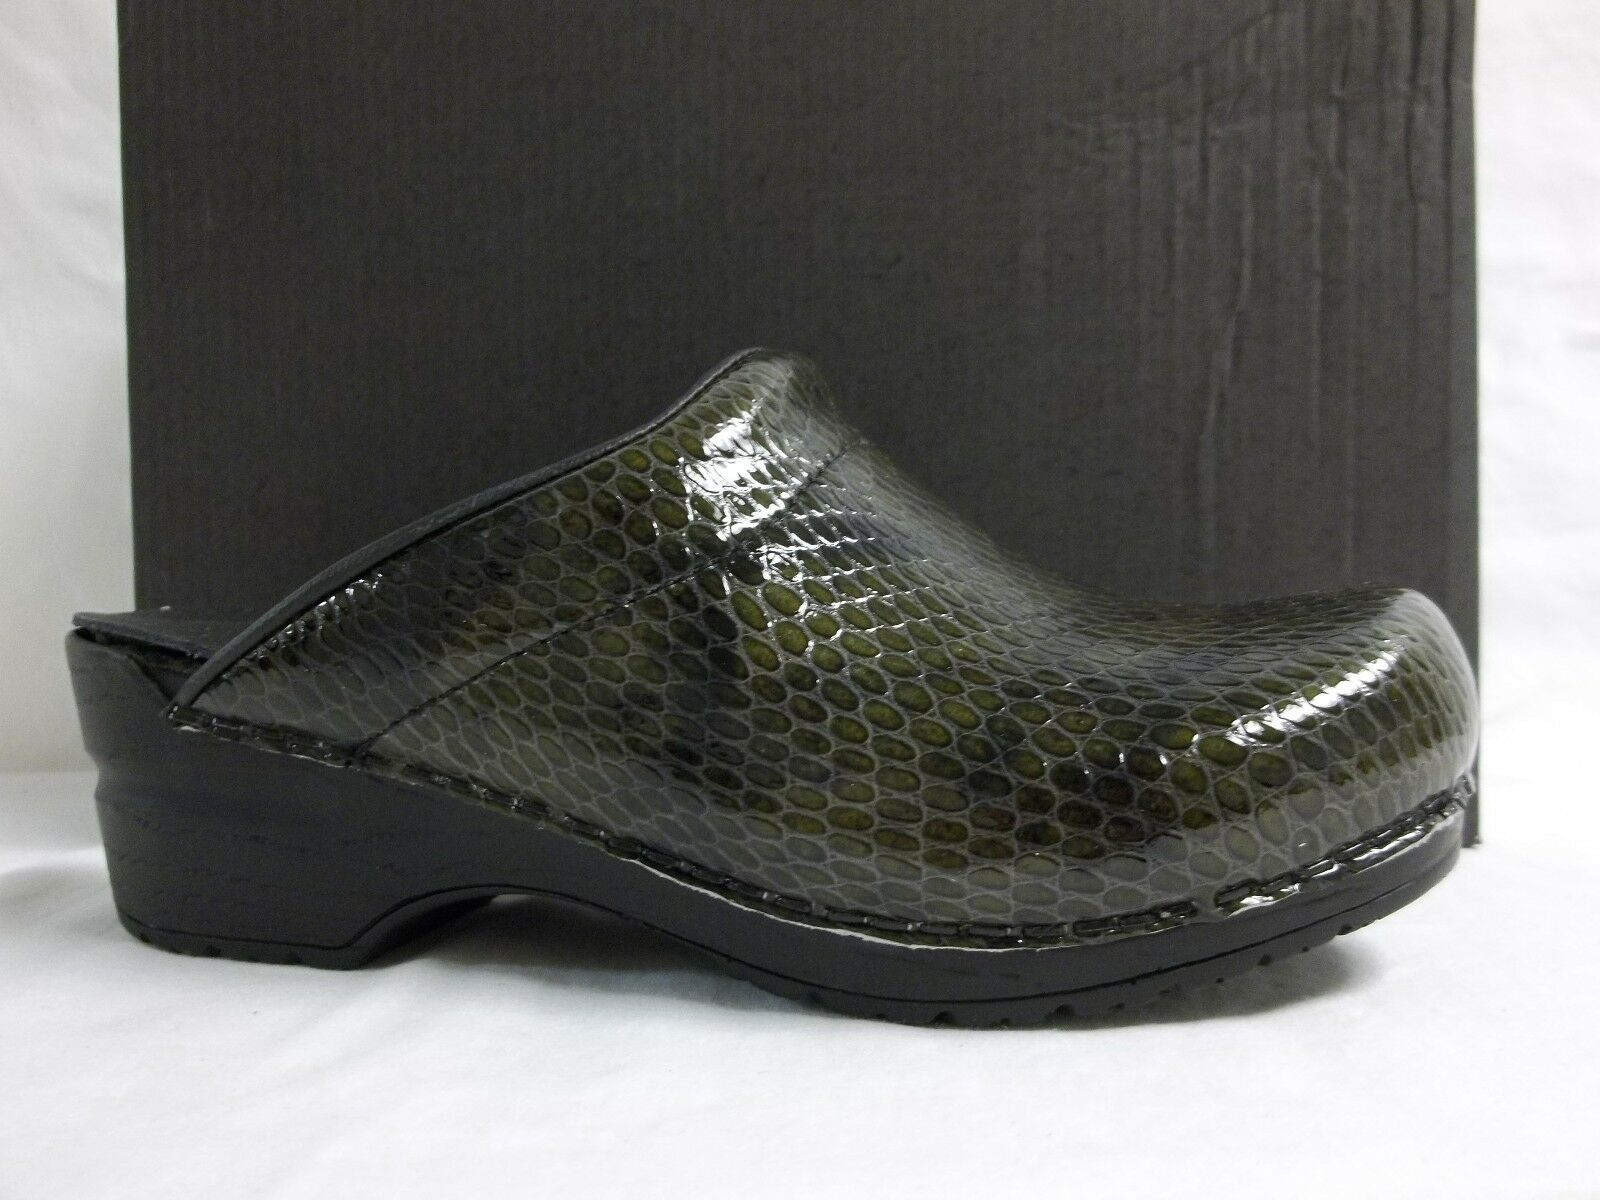 Sanita Size EU 36 US 5.5 M Sonia Olive Patent Leather Clogs New Womens shoes